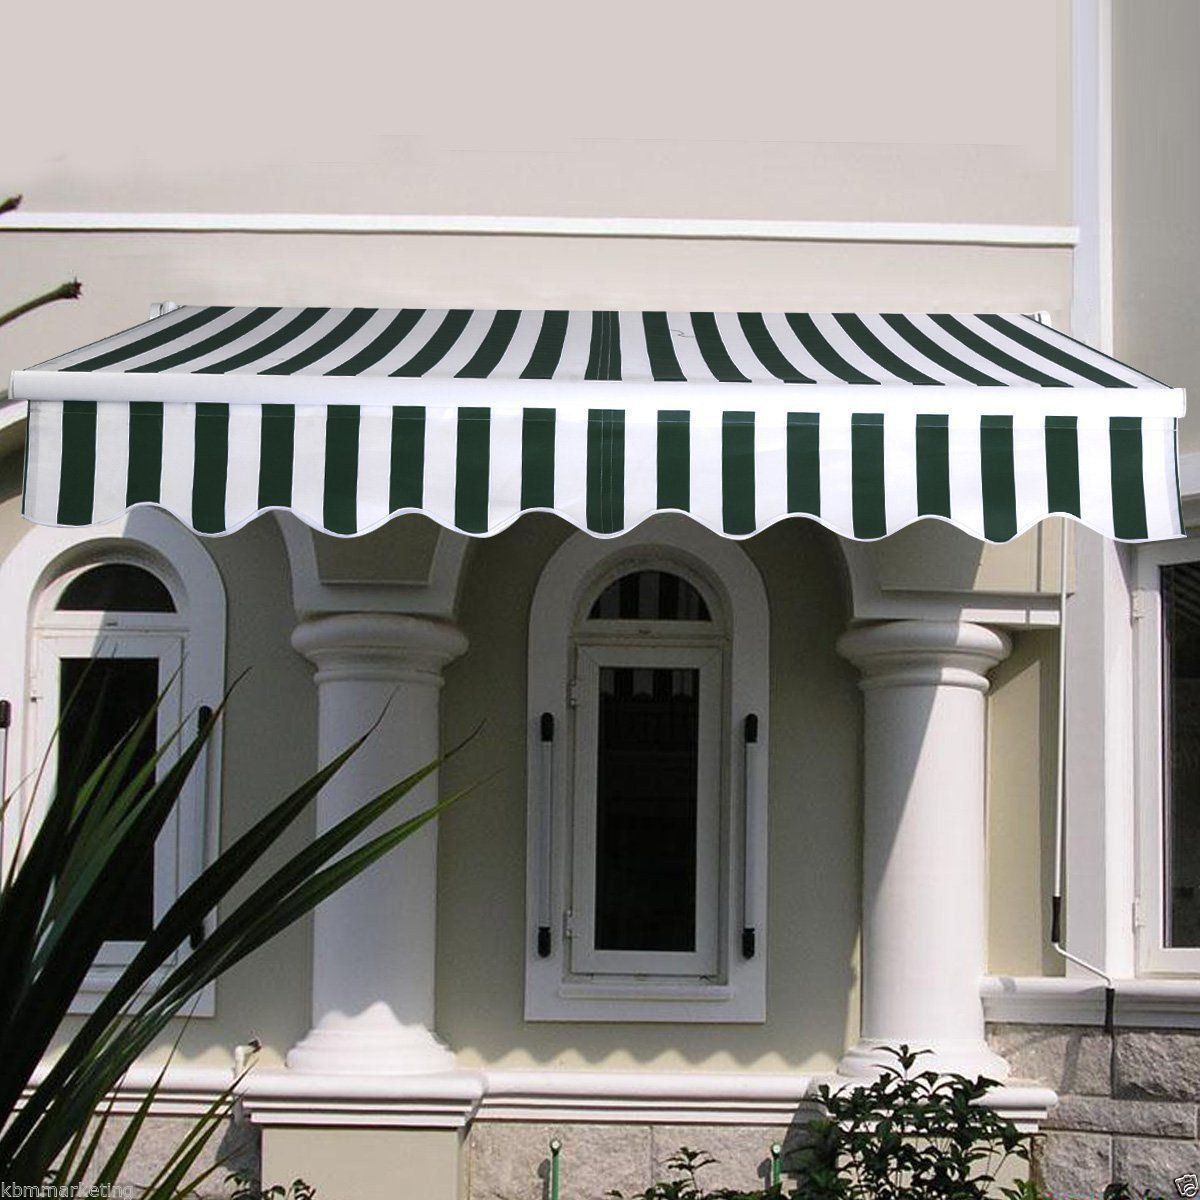 Manual Retractable Awning With Heavy Duty Cloth Specially Designed